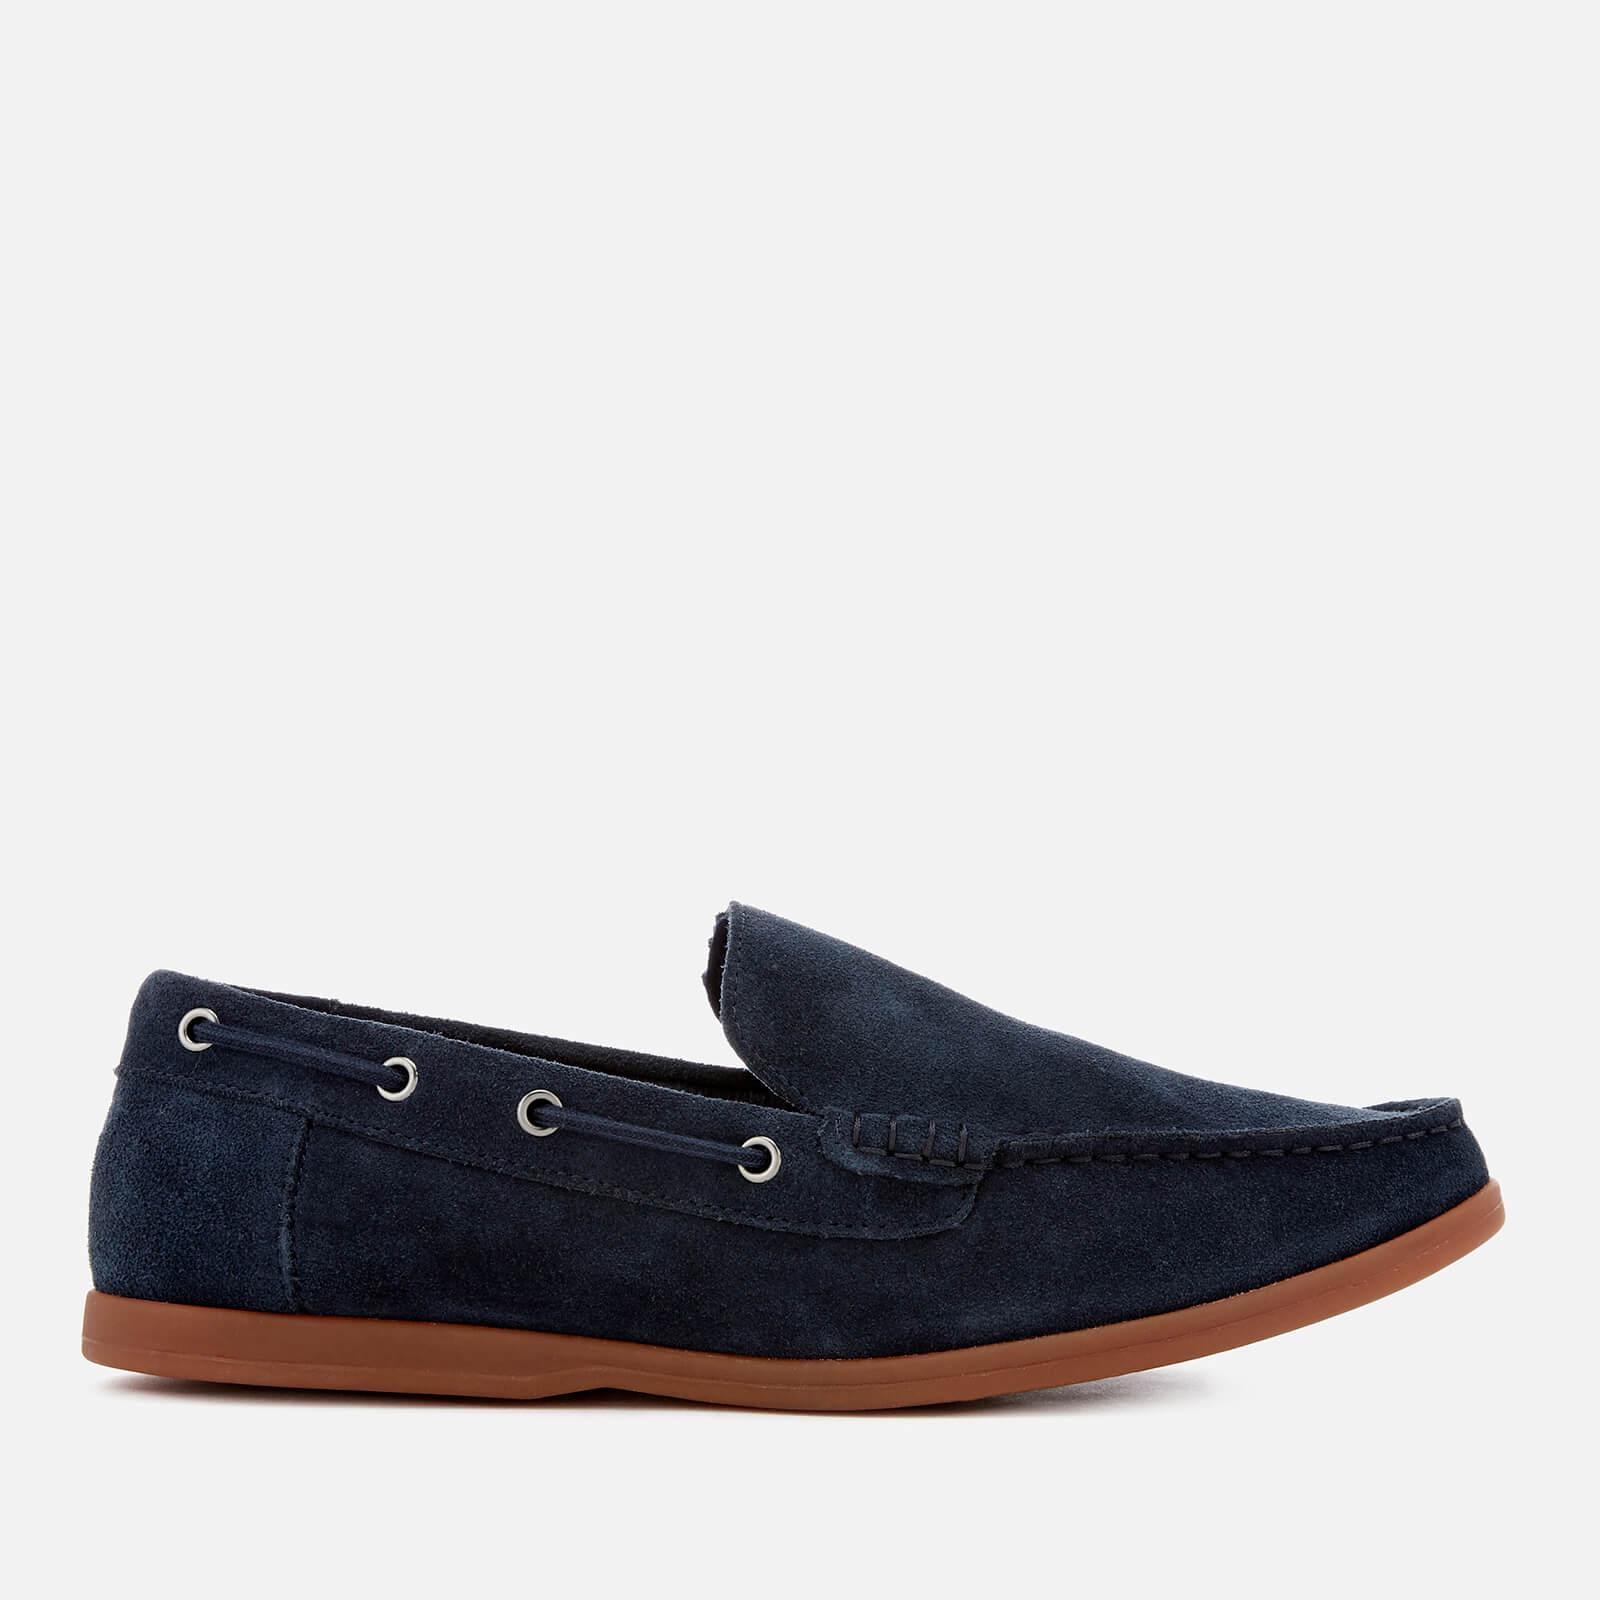 Blue suede 'Morven Sun' slip on shoes Grey outlet store online buy cheap websites popular online cheap visit perfect sale online 6ceX37WCK